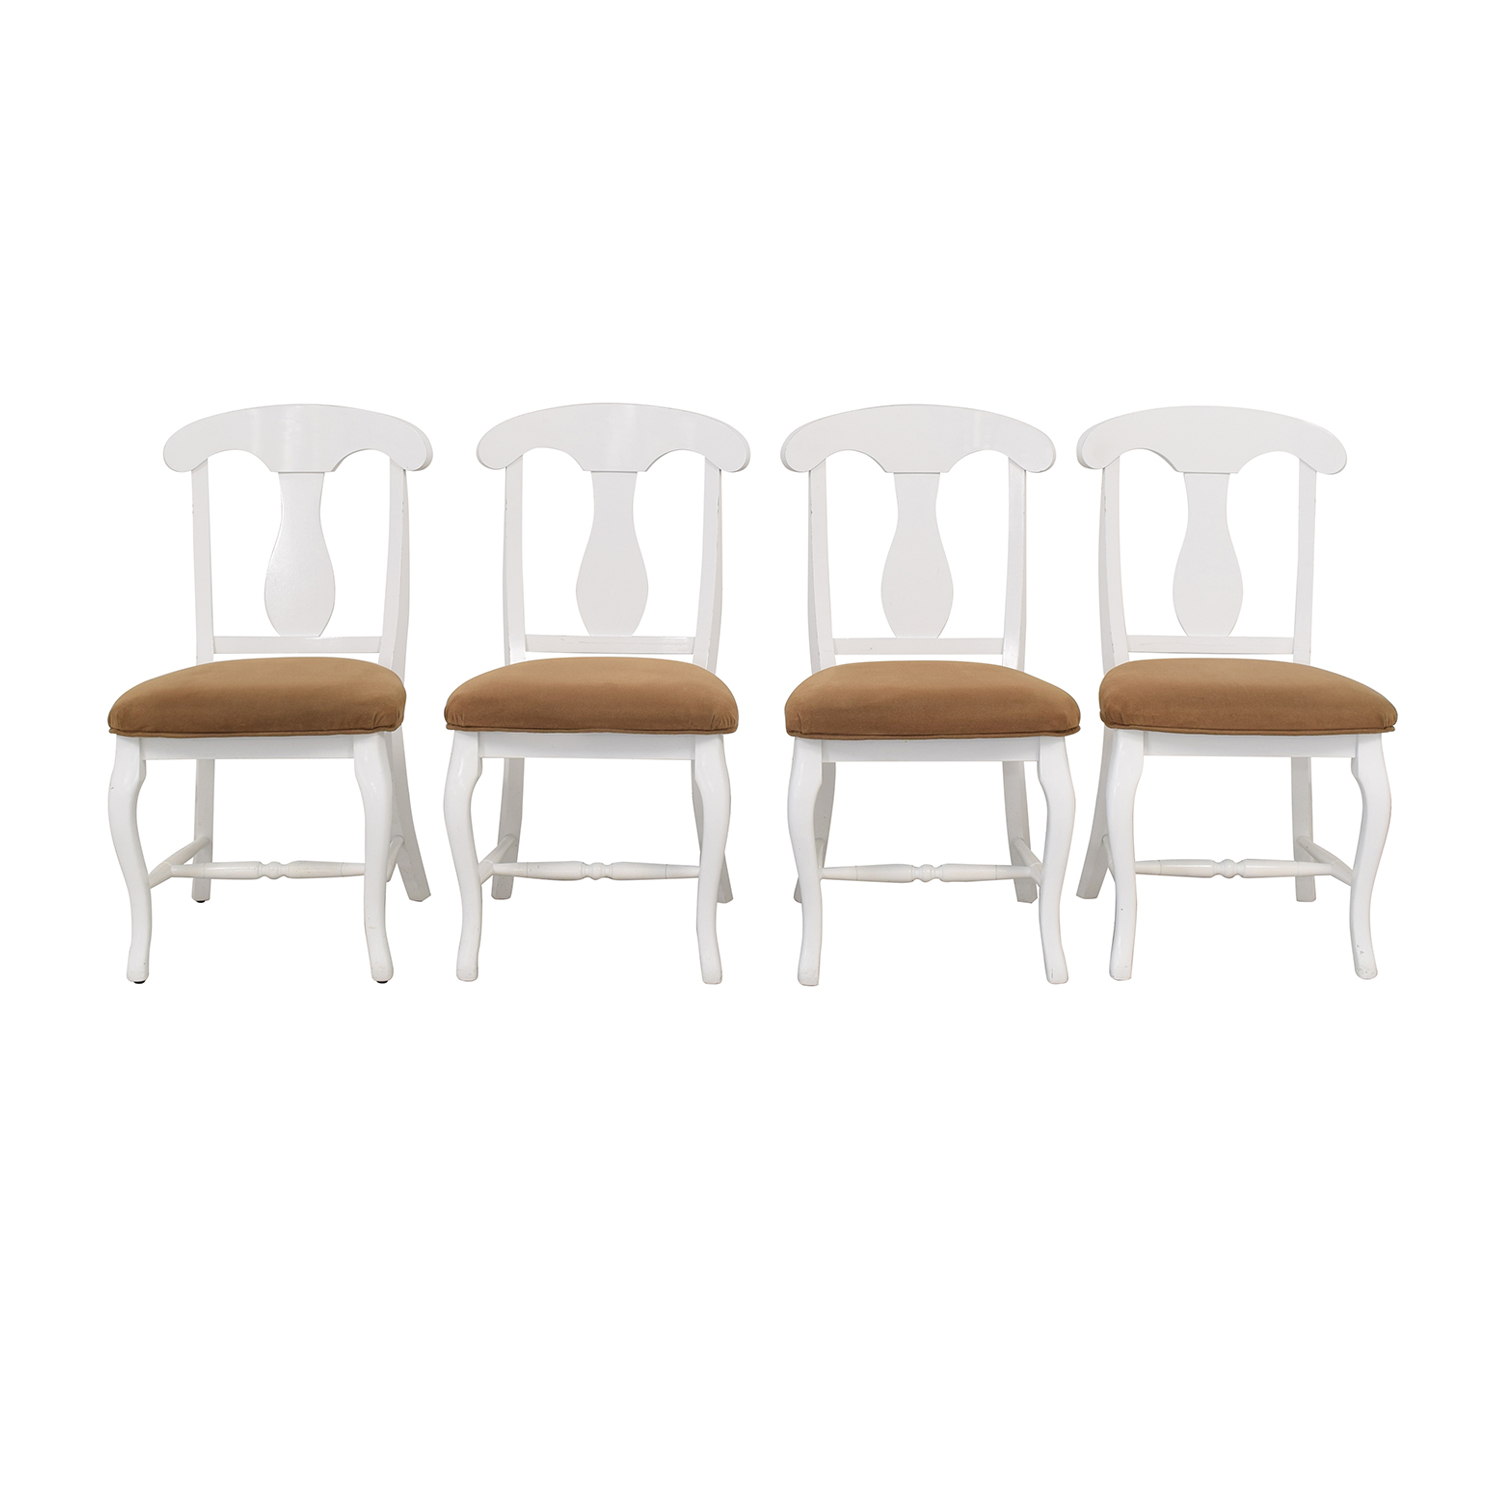 shop Canadel Canadel Upholstered Dining Chairs online